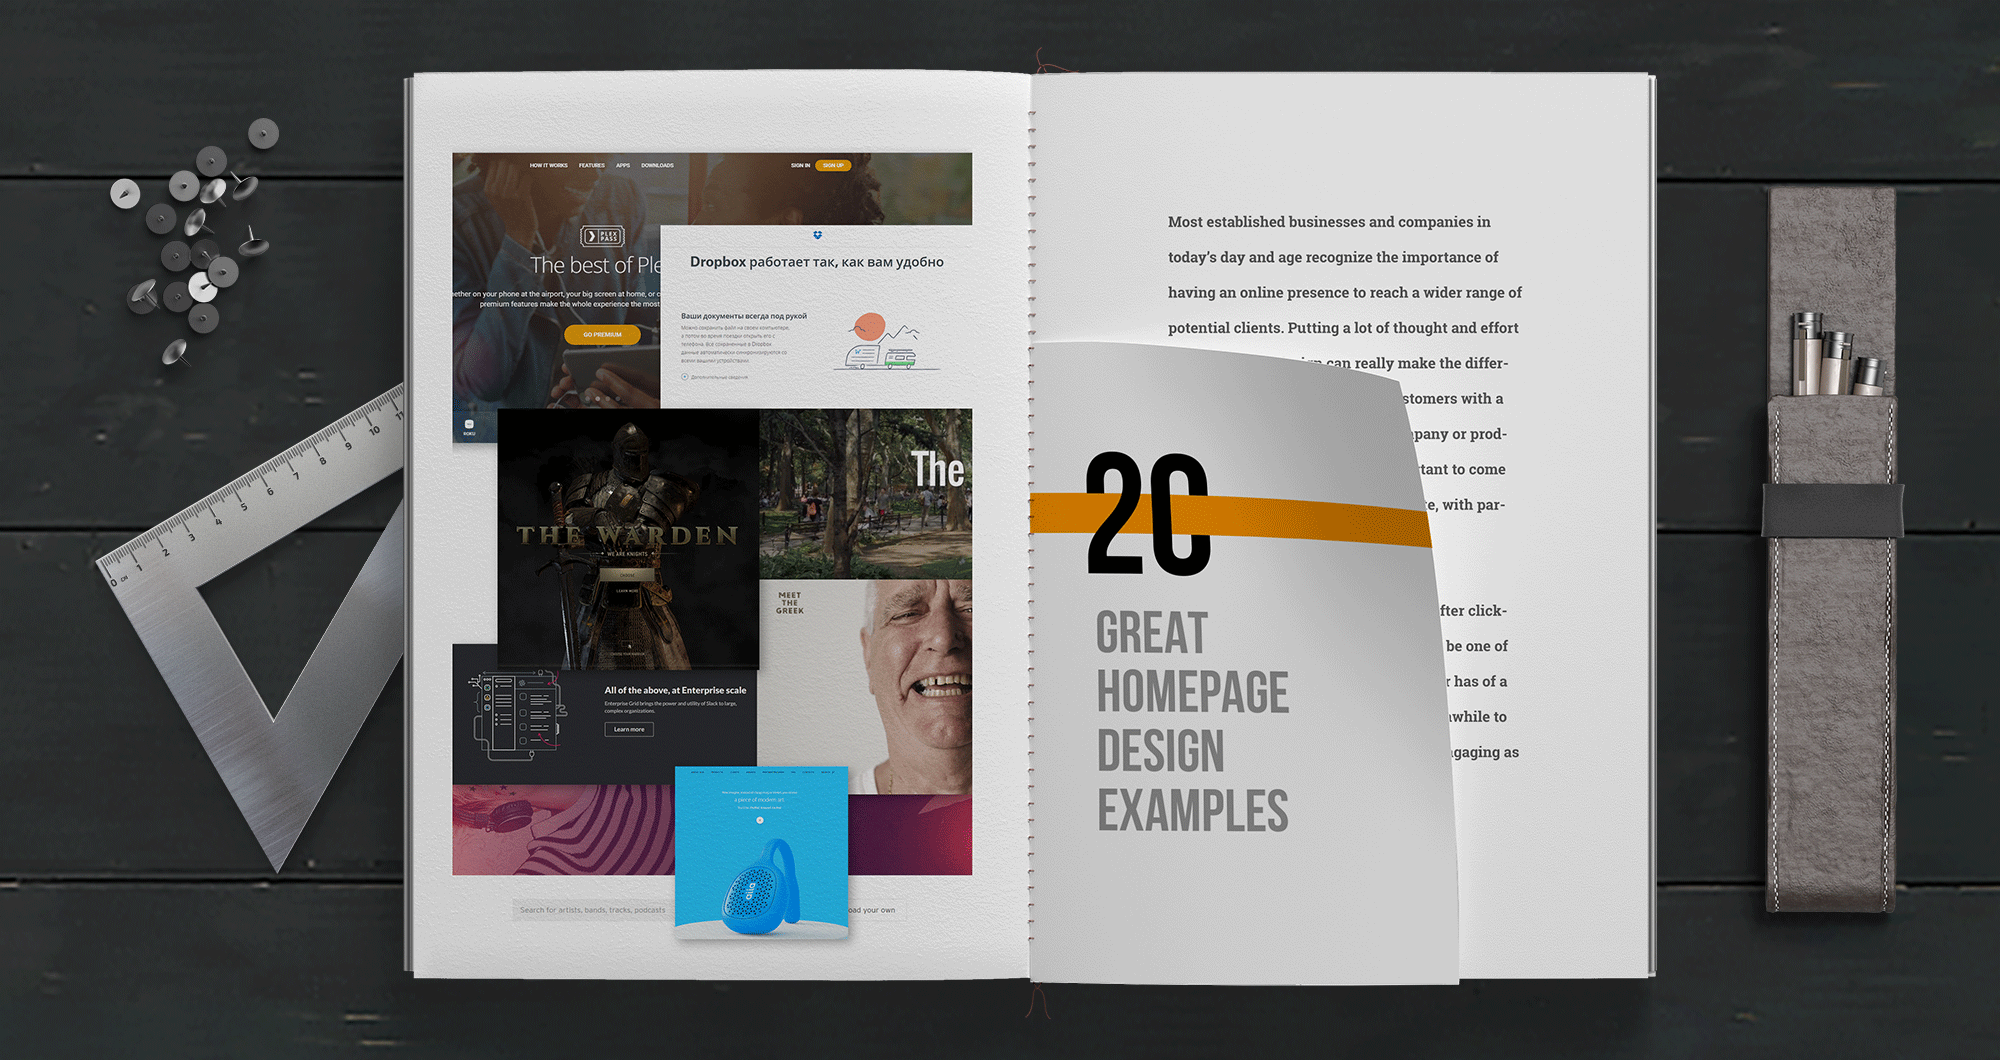 20 Greatest Home Page Design Examples – Muzli -Design Inspiration